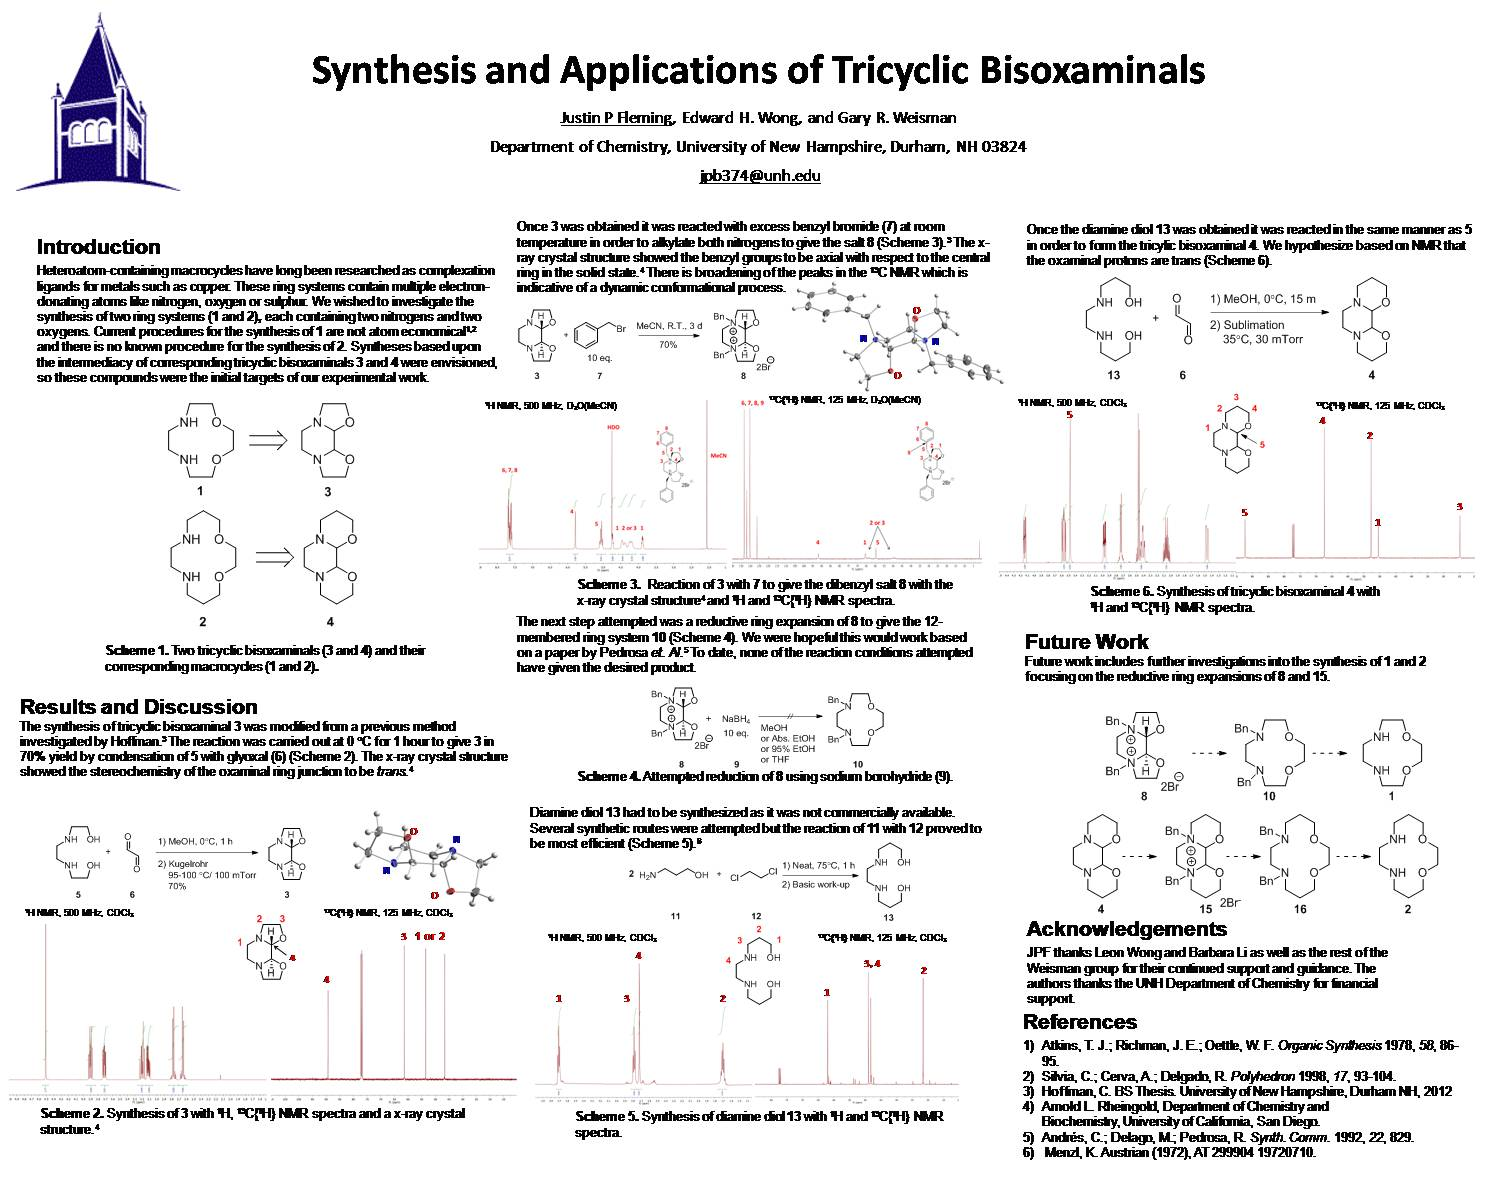 Synthesis And Applications Of Tricyclic Bisoxaminals by jpb374